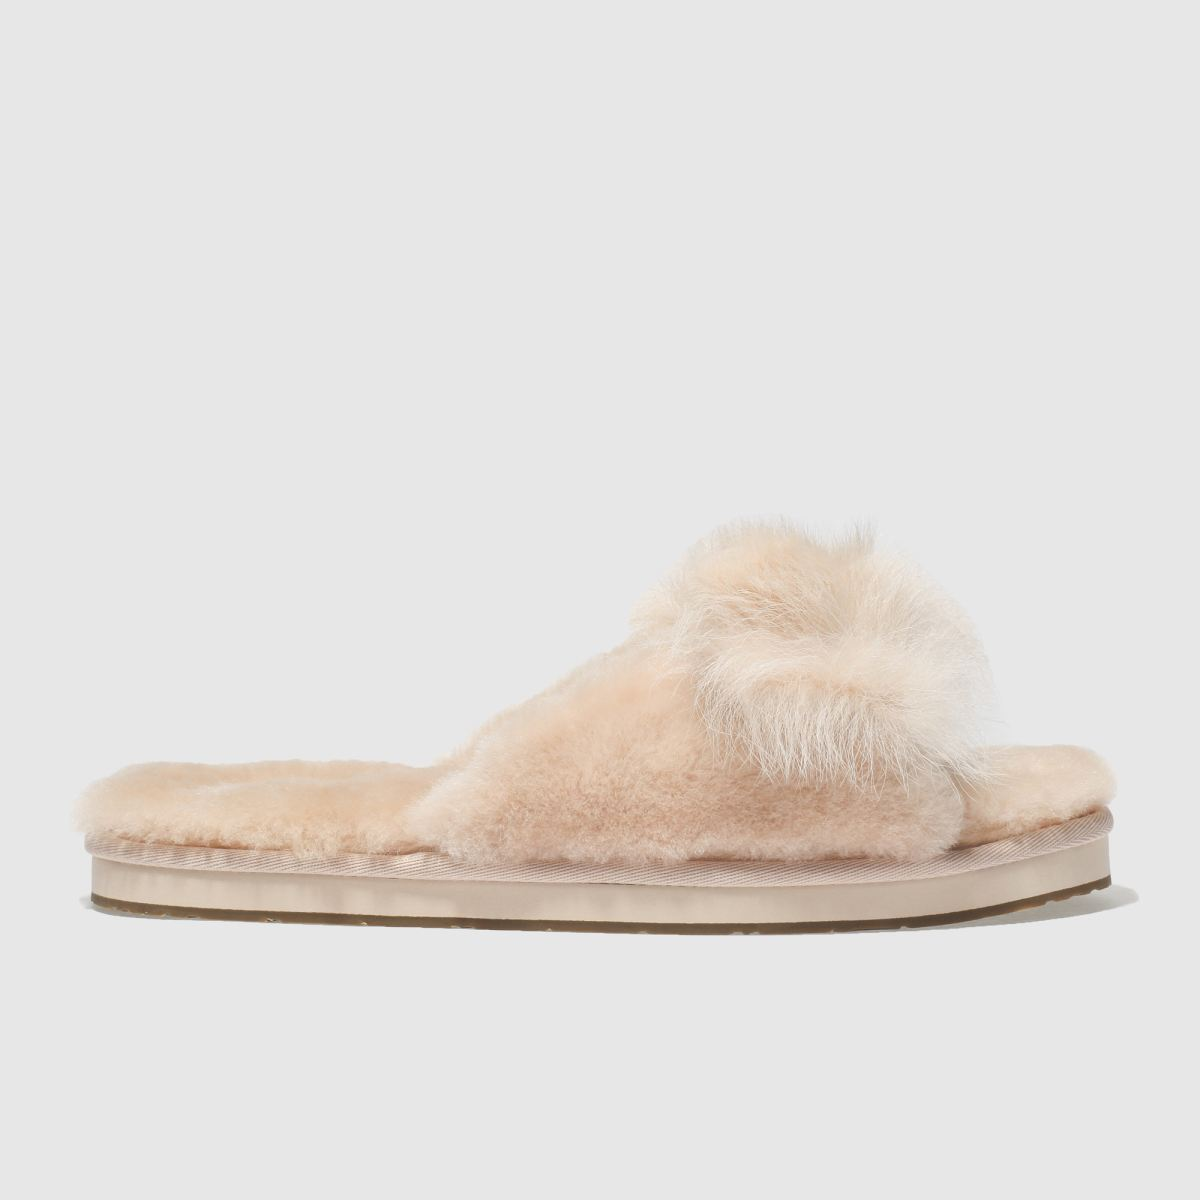 Ugg Peach Mirabelle Slippers